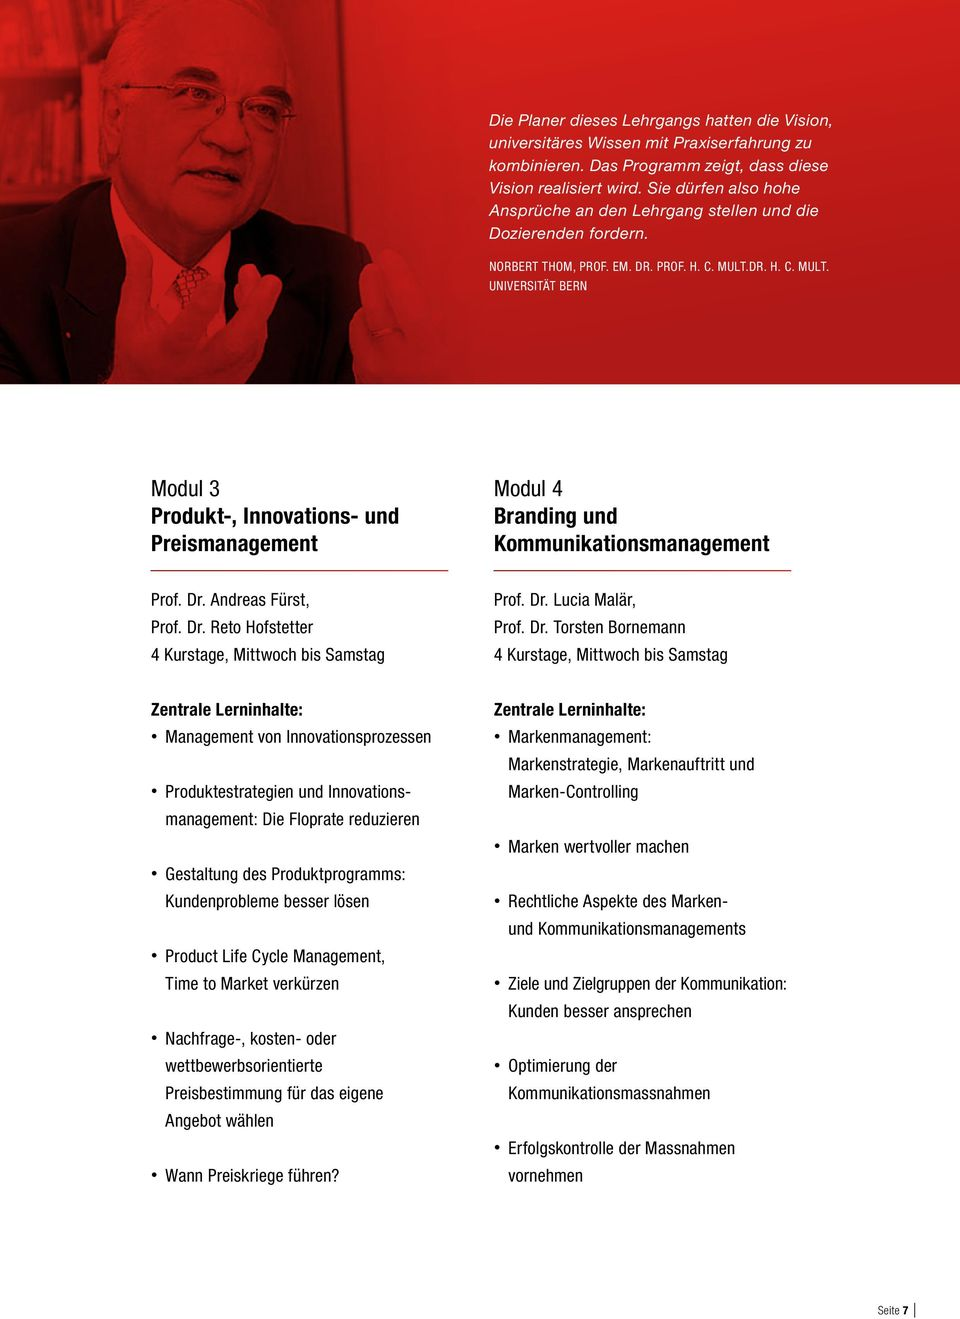 DR. H. C. MULT. UNIVERSITÄT BERN Modul 3 Produkt-, Innovations- und Preismanagement Modul 4 Branding und Kommunikationsmanagement Prof. Dr. Andreas Fürst, Prof. Dr. Reto Hofstetter 4 Kurstage, Mittwoch bis Samstag Prof.